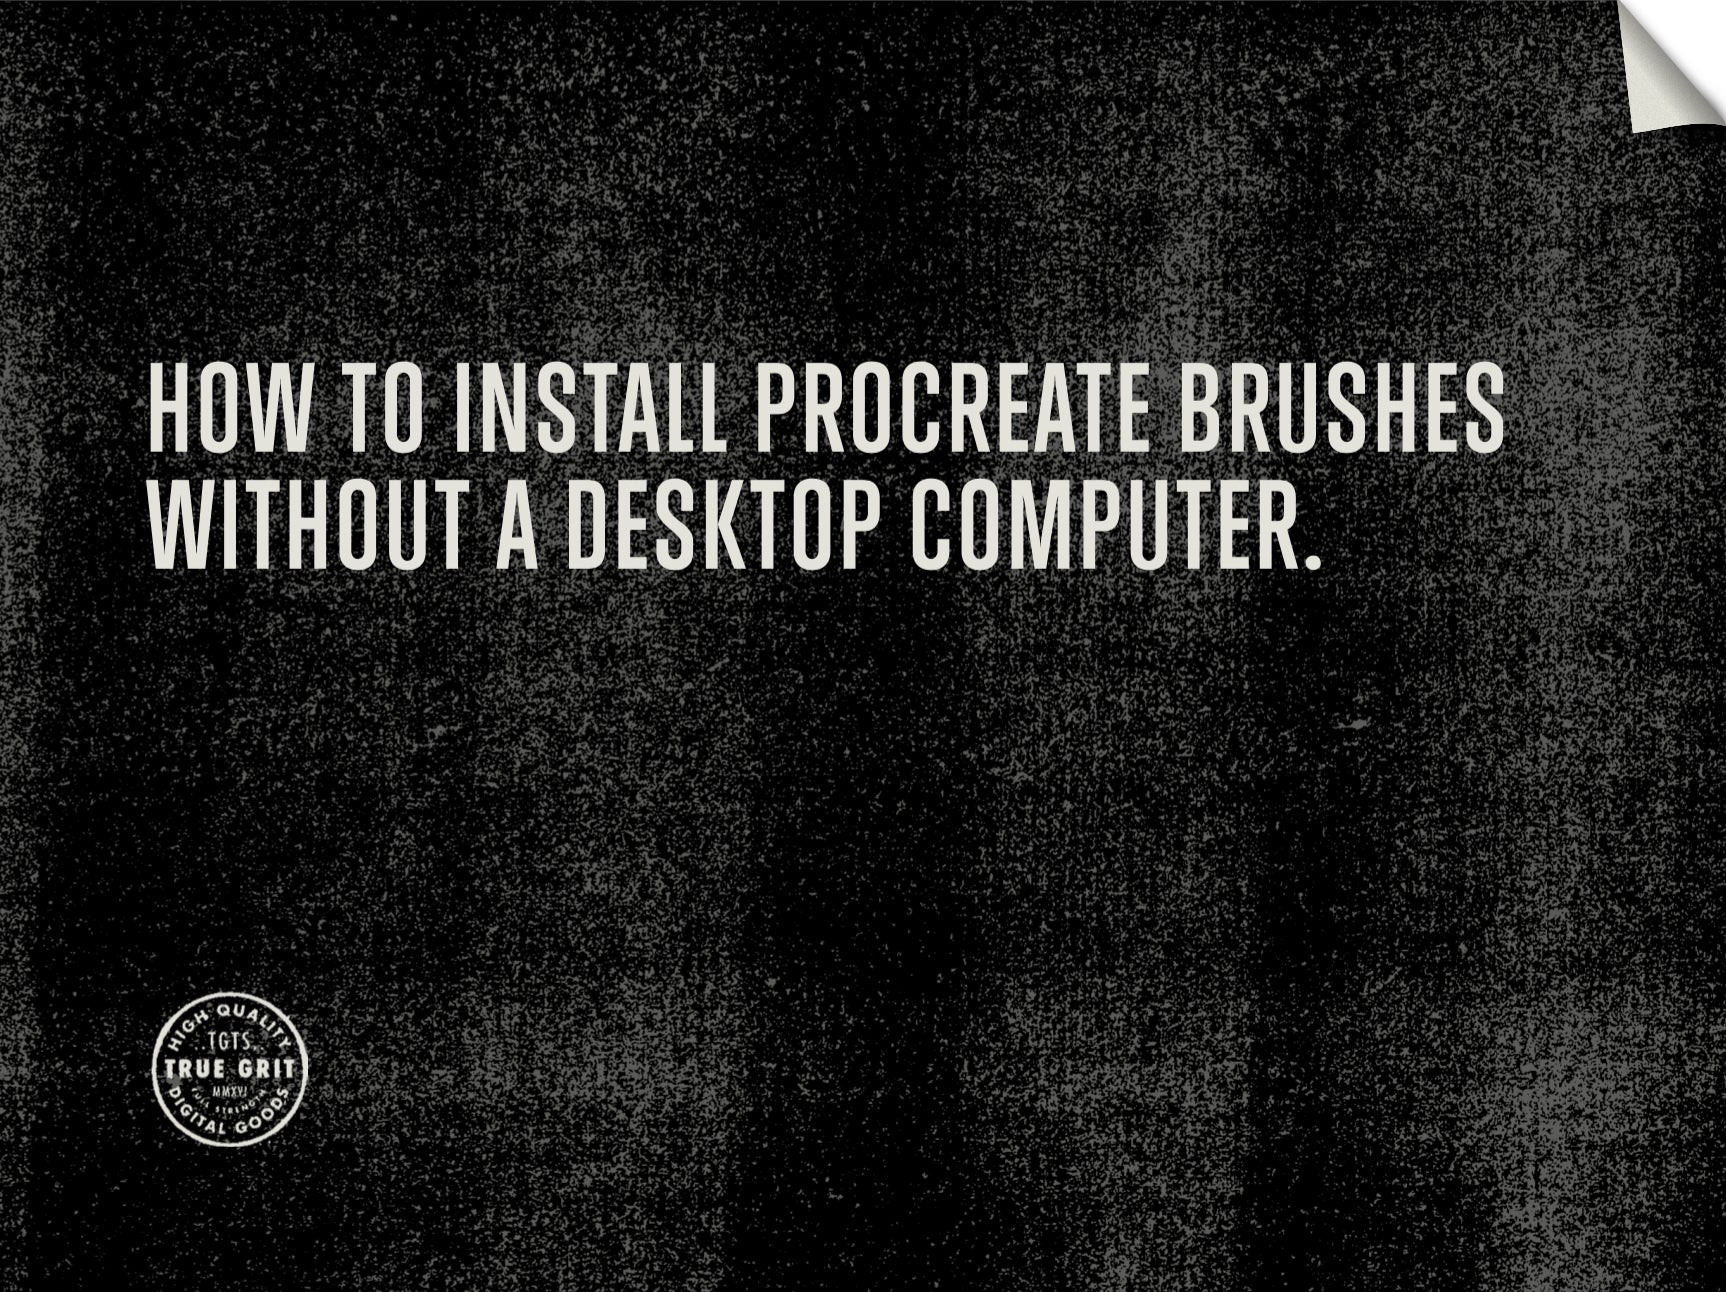 How To Install Procreate Brushes – True Grit Texture Supply